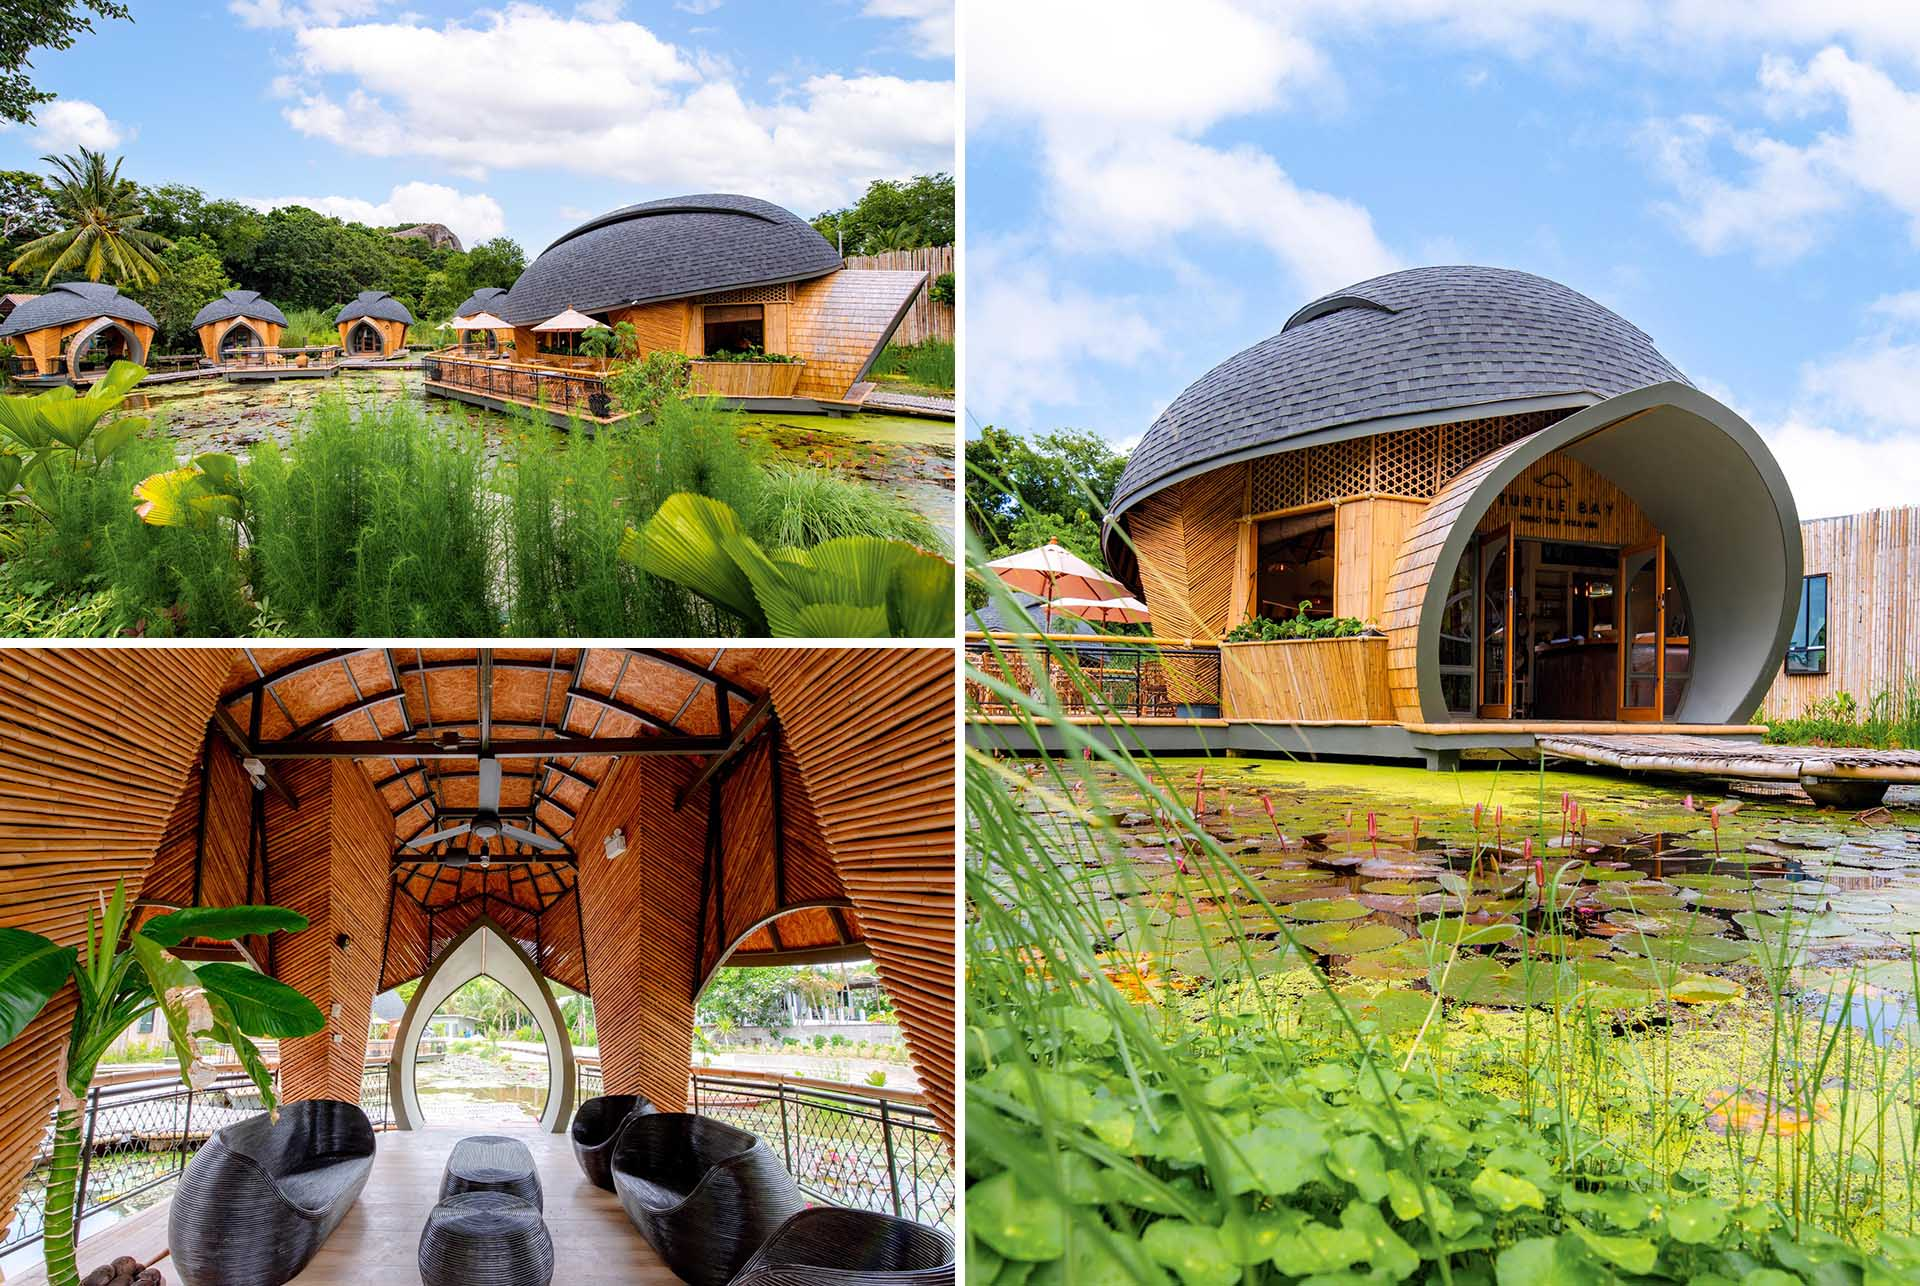 A modern eco-lodge in Thailand, that has cabins shaped like turtle shells that surround a lotus pond.